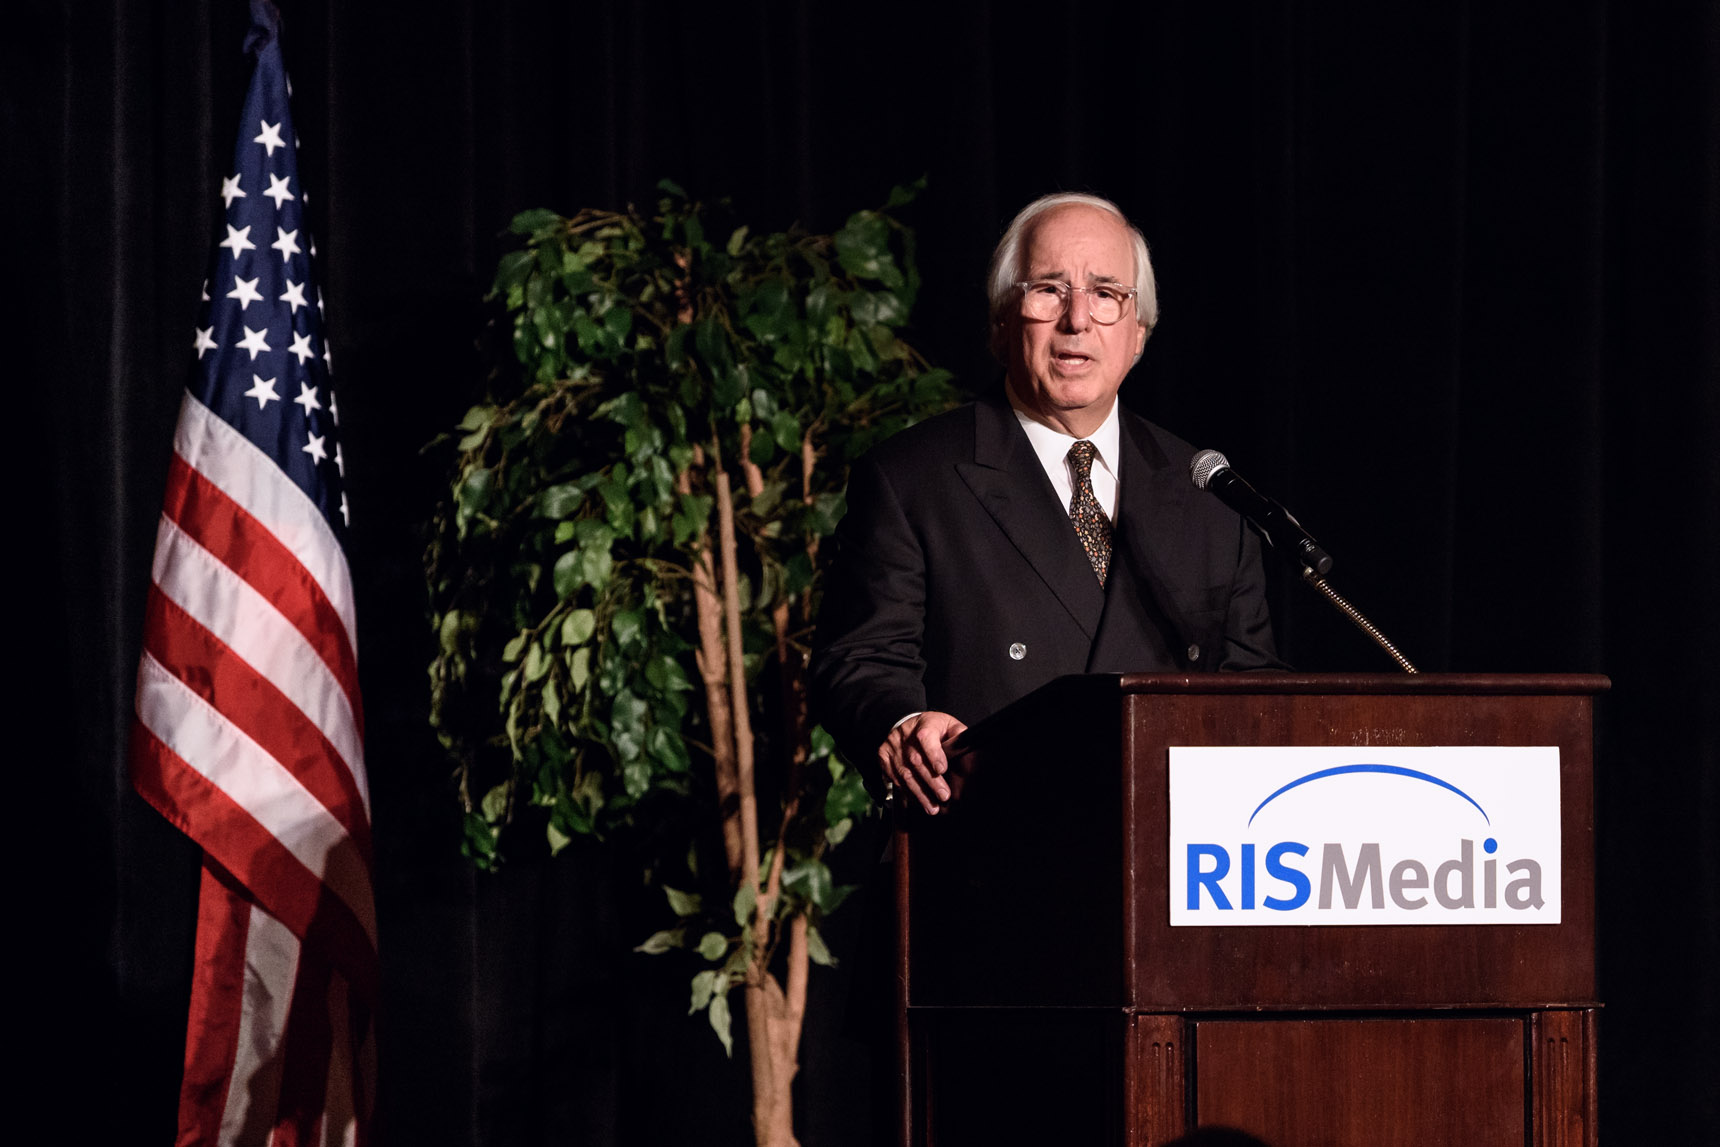 Frank Abagnale Jr. speaking at an event with RISMedia - Event Photography by Michael Courier Photography